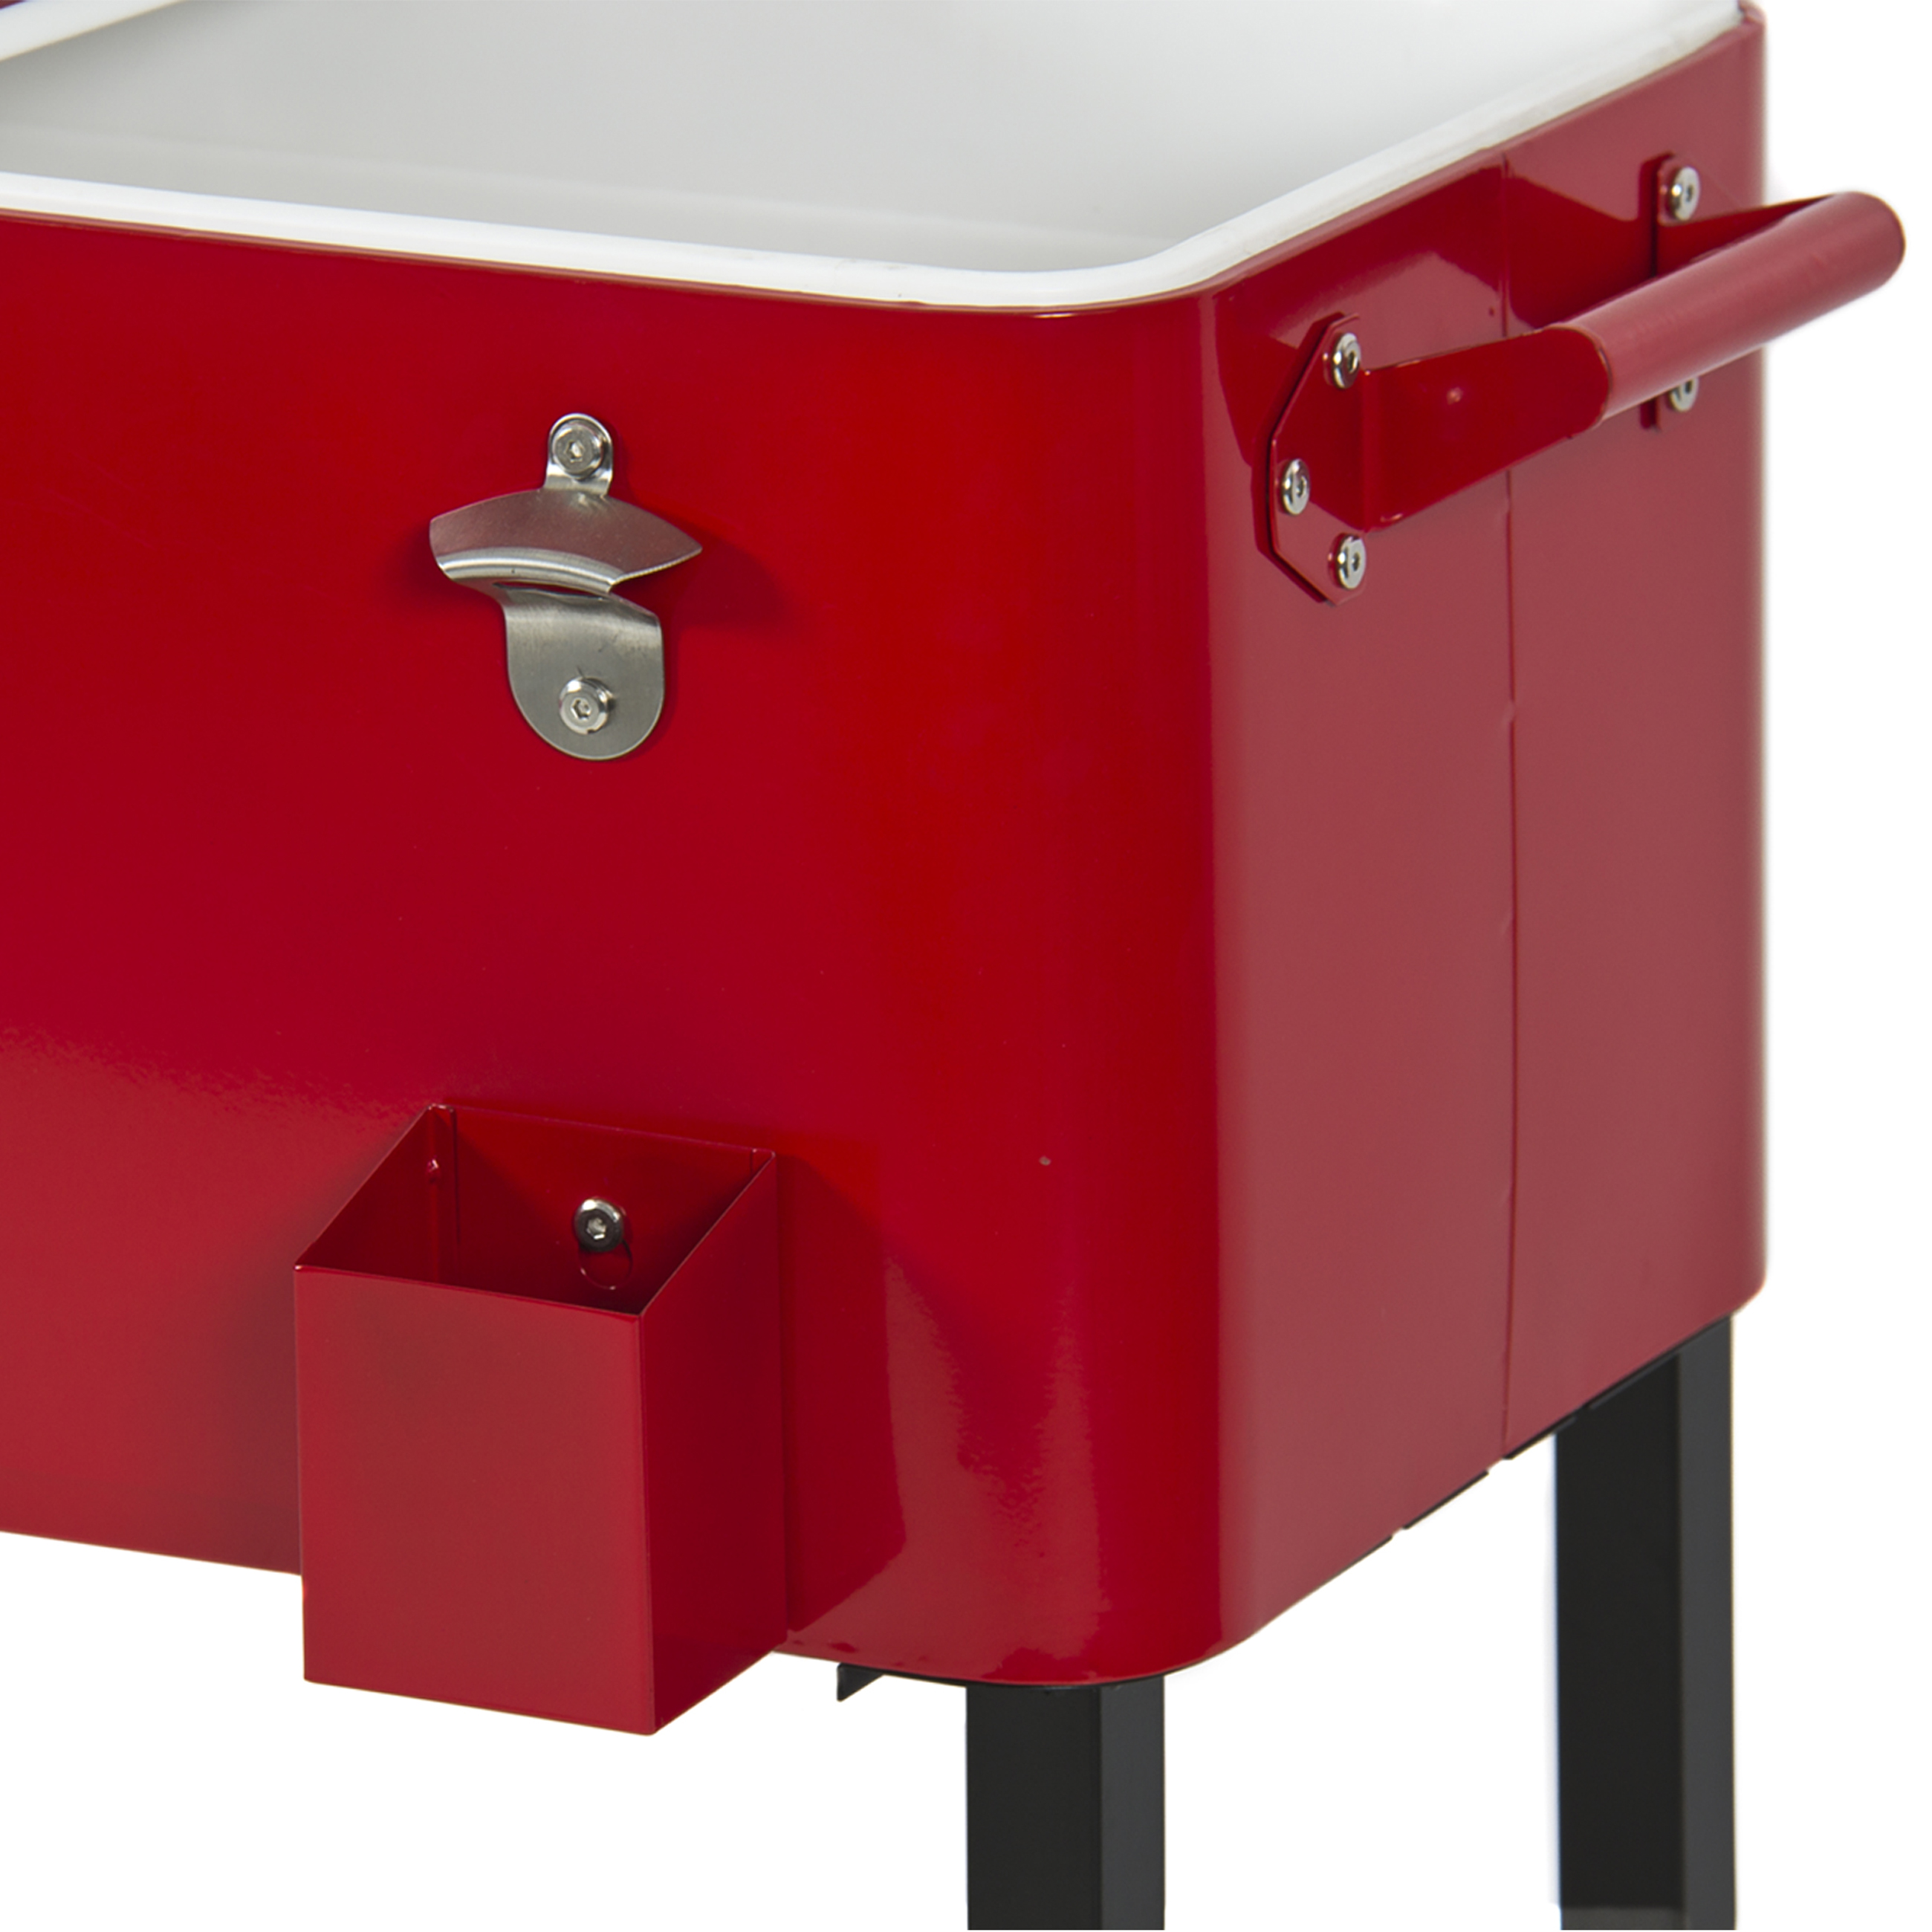 Awesome Patio Deck Cooler Rolling Outdoor 80 Quart Solid Steel Construction Home  Party   Walmart.com